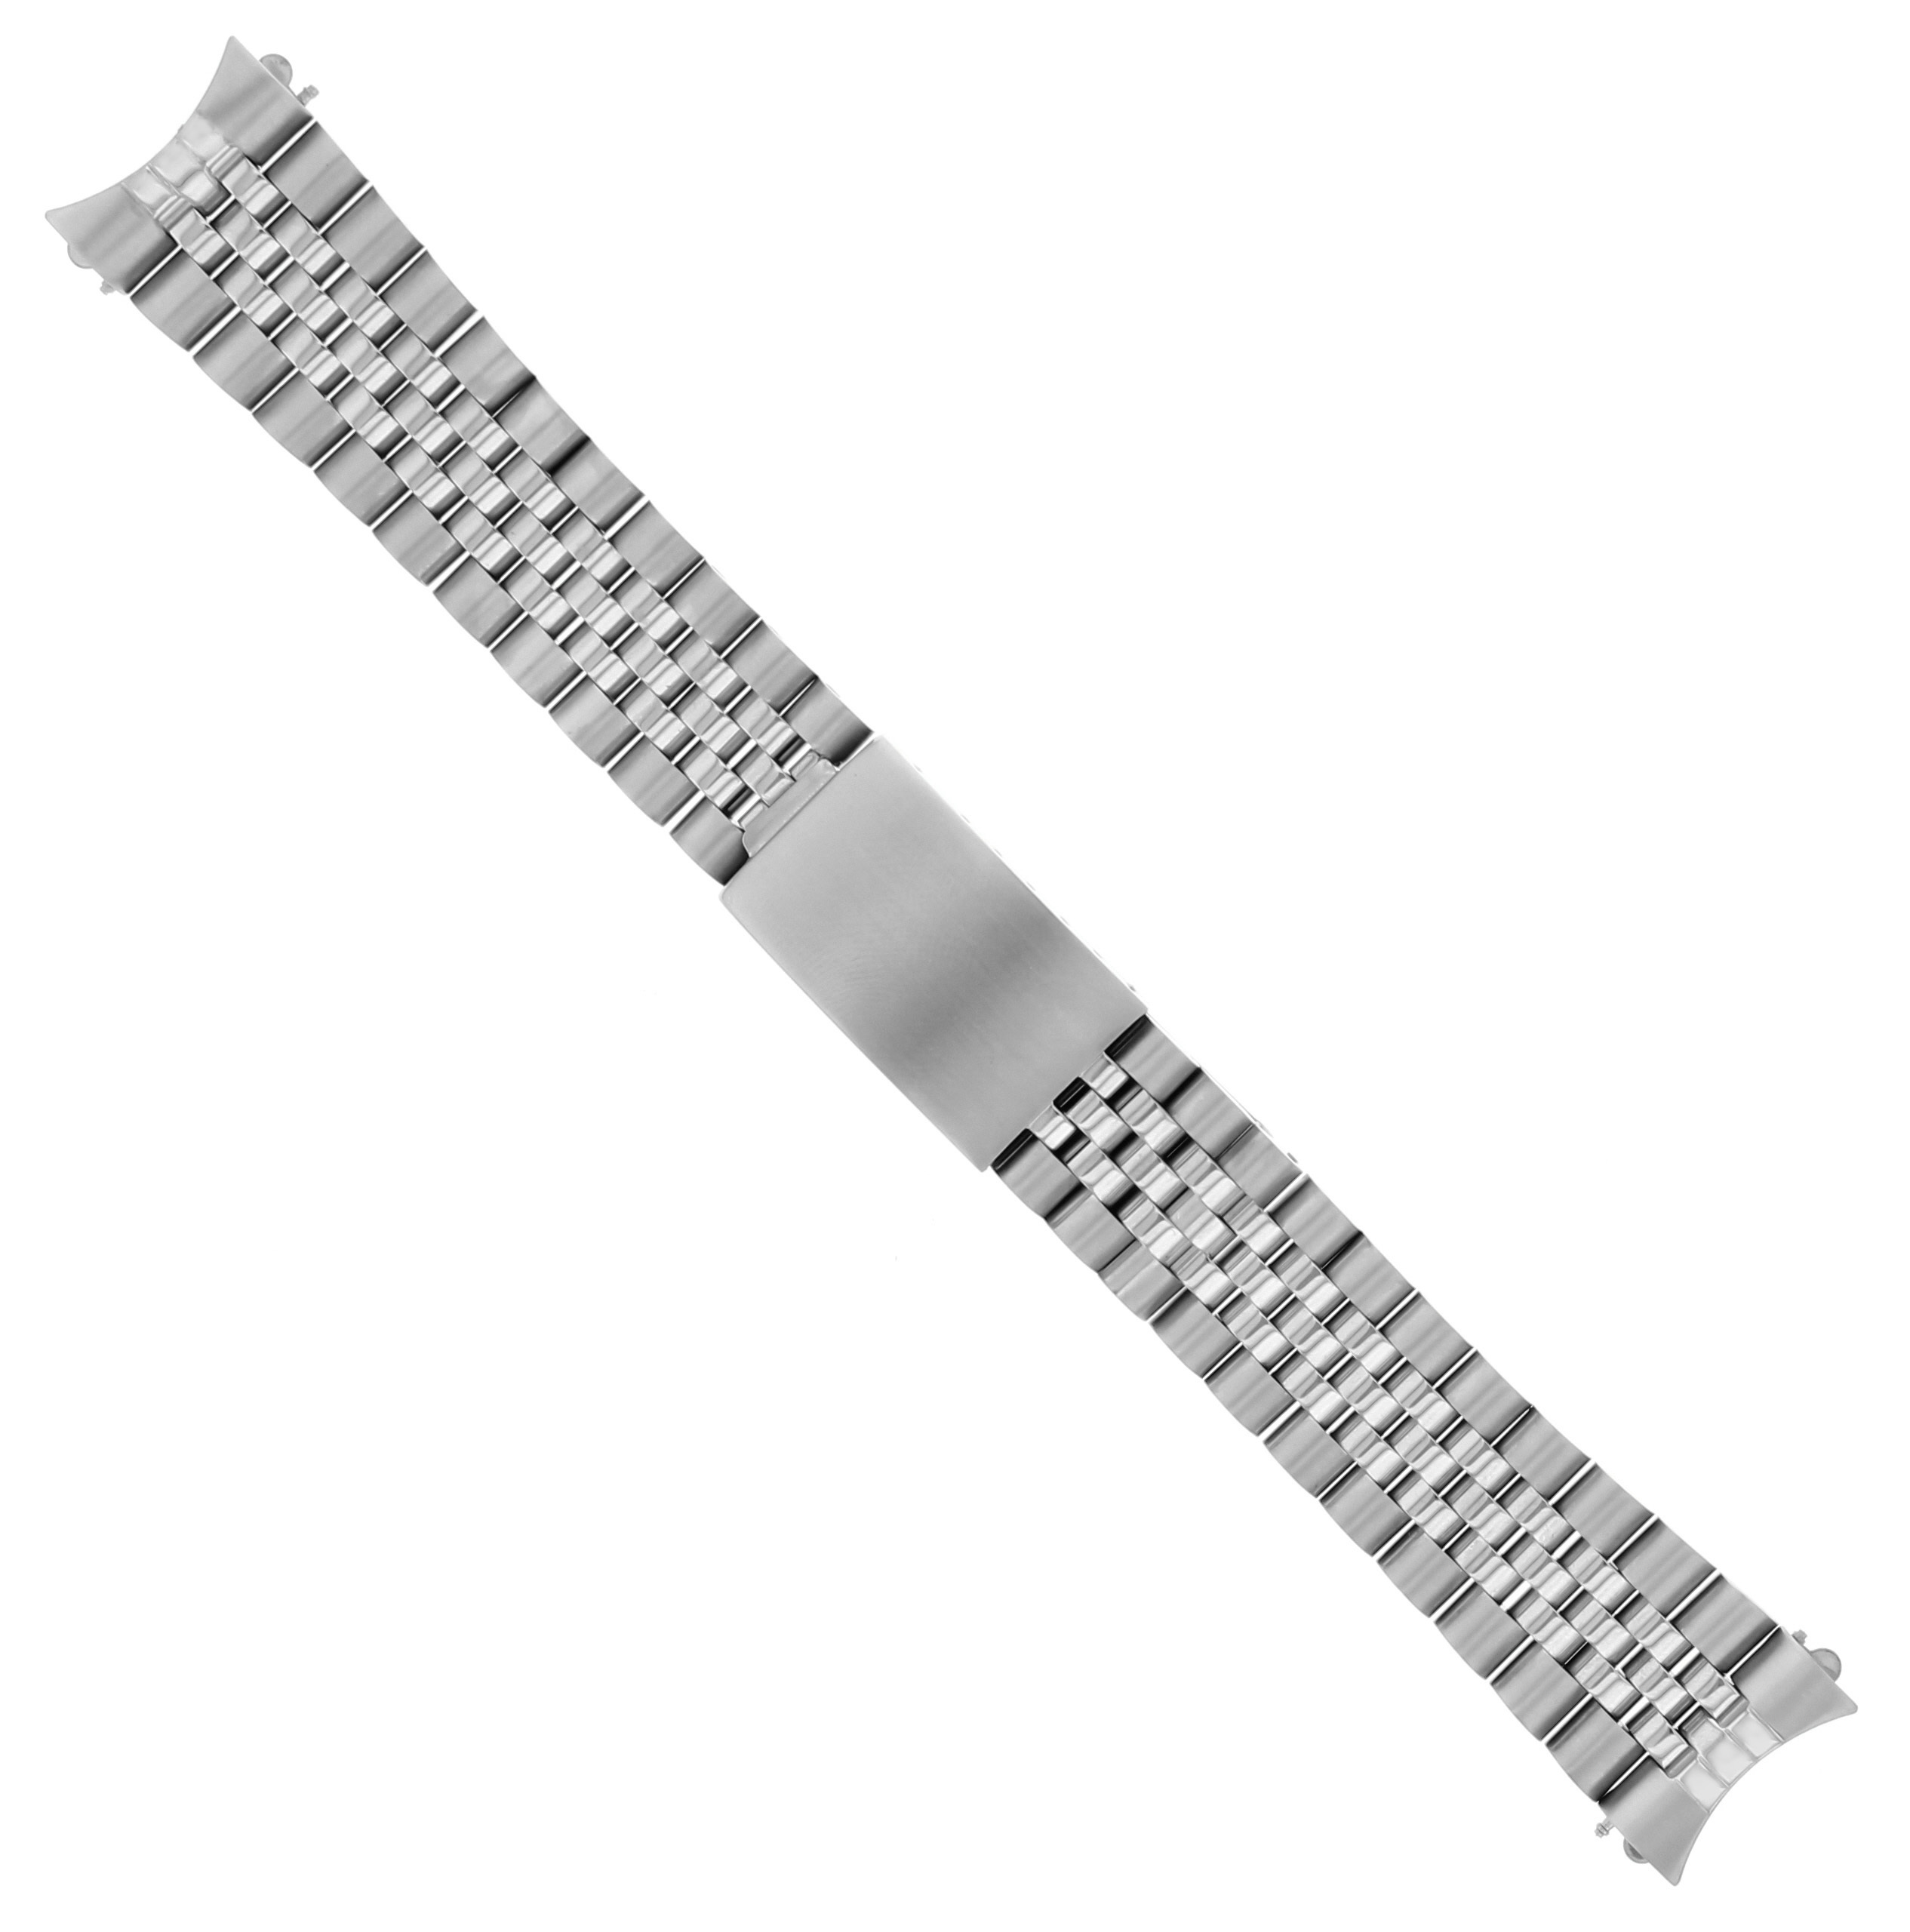 20MM STAINLESS STEEL JUBILEE WATCH BAND FOR ROLEX DATEJUST 62510H